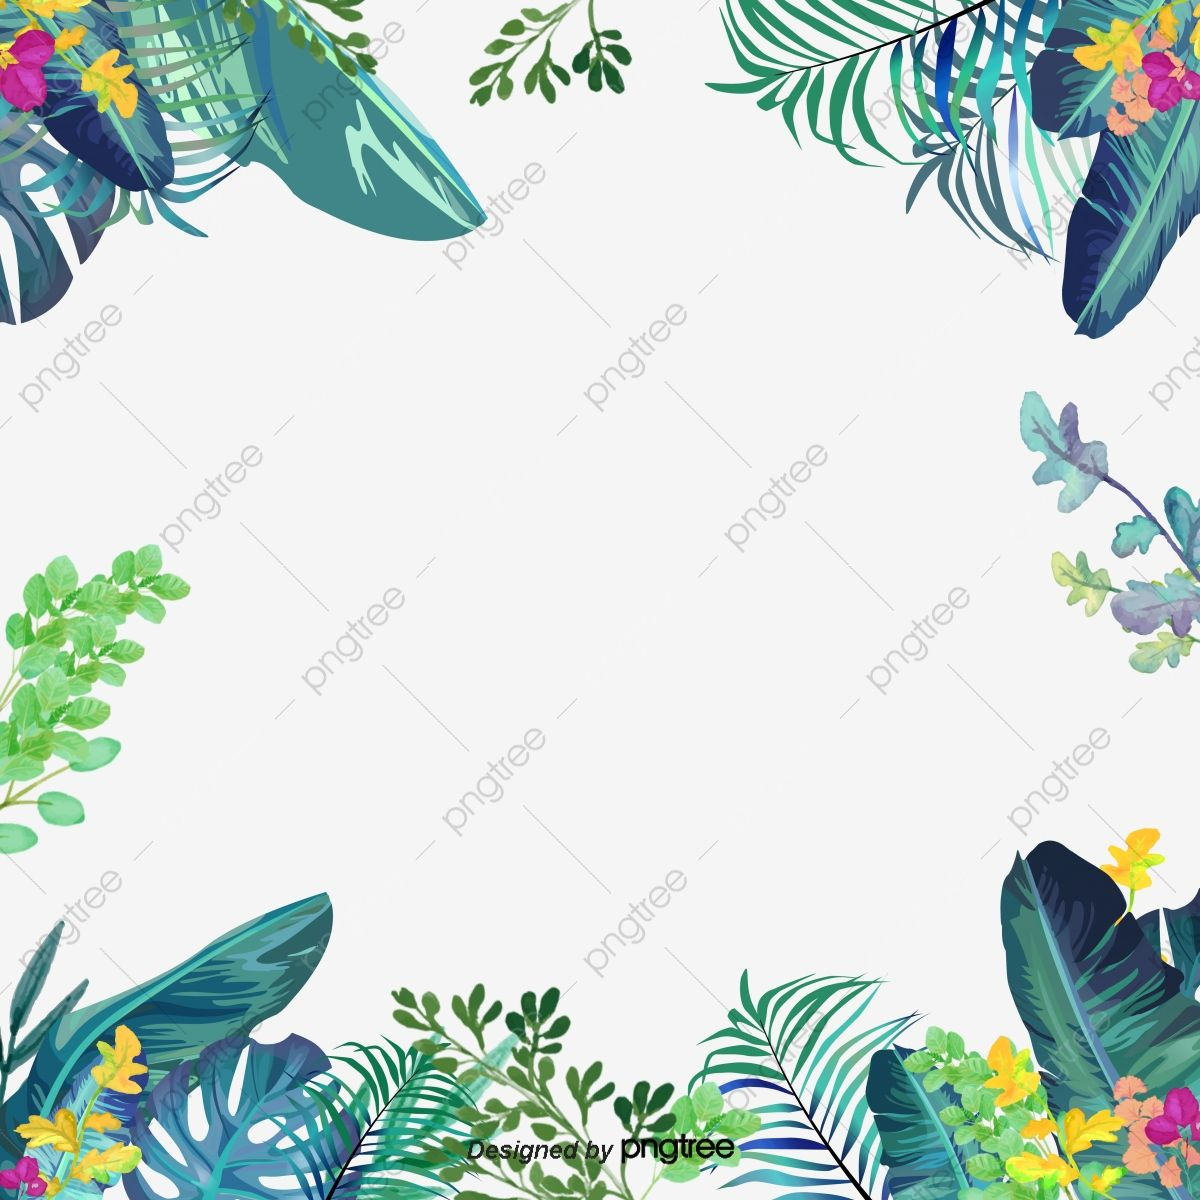 Green Small Fresh Border Border Taobao Border Small Fresh Border Png And Vector With Transparent Background For Free Download Flower Border Graphic Design Background Templates Floral Border